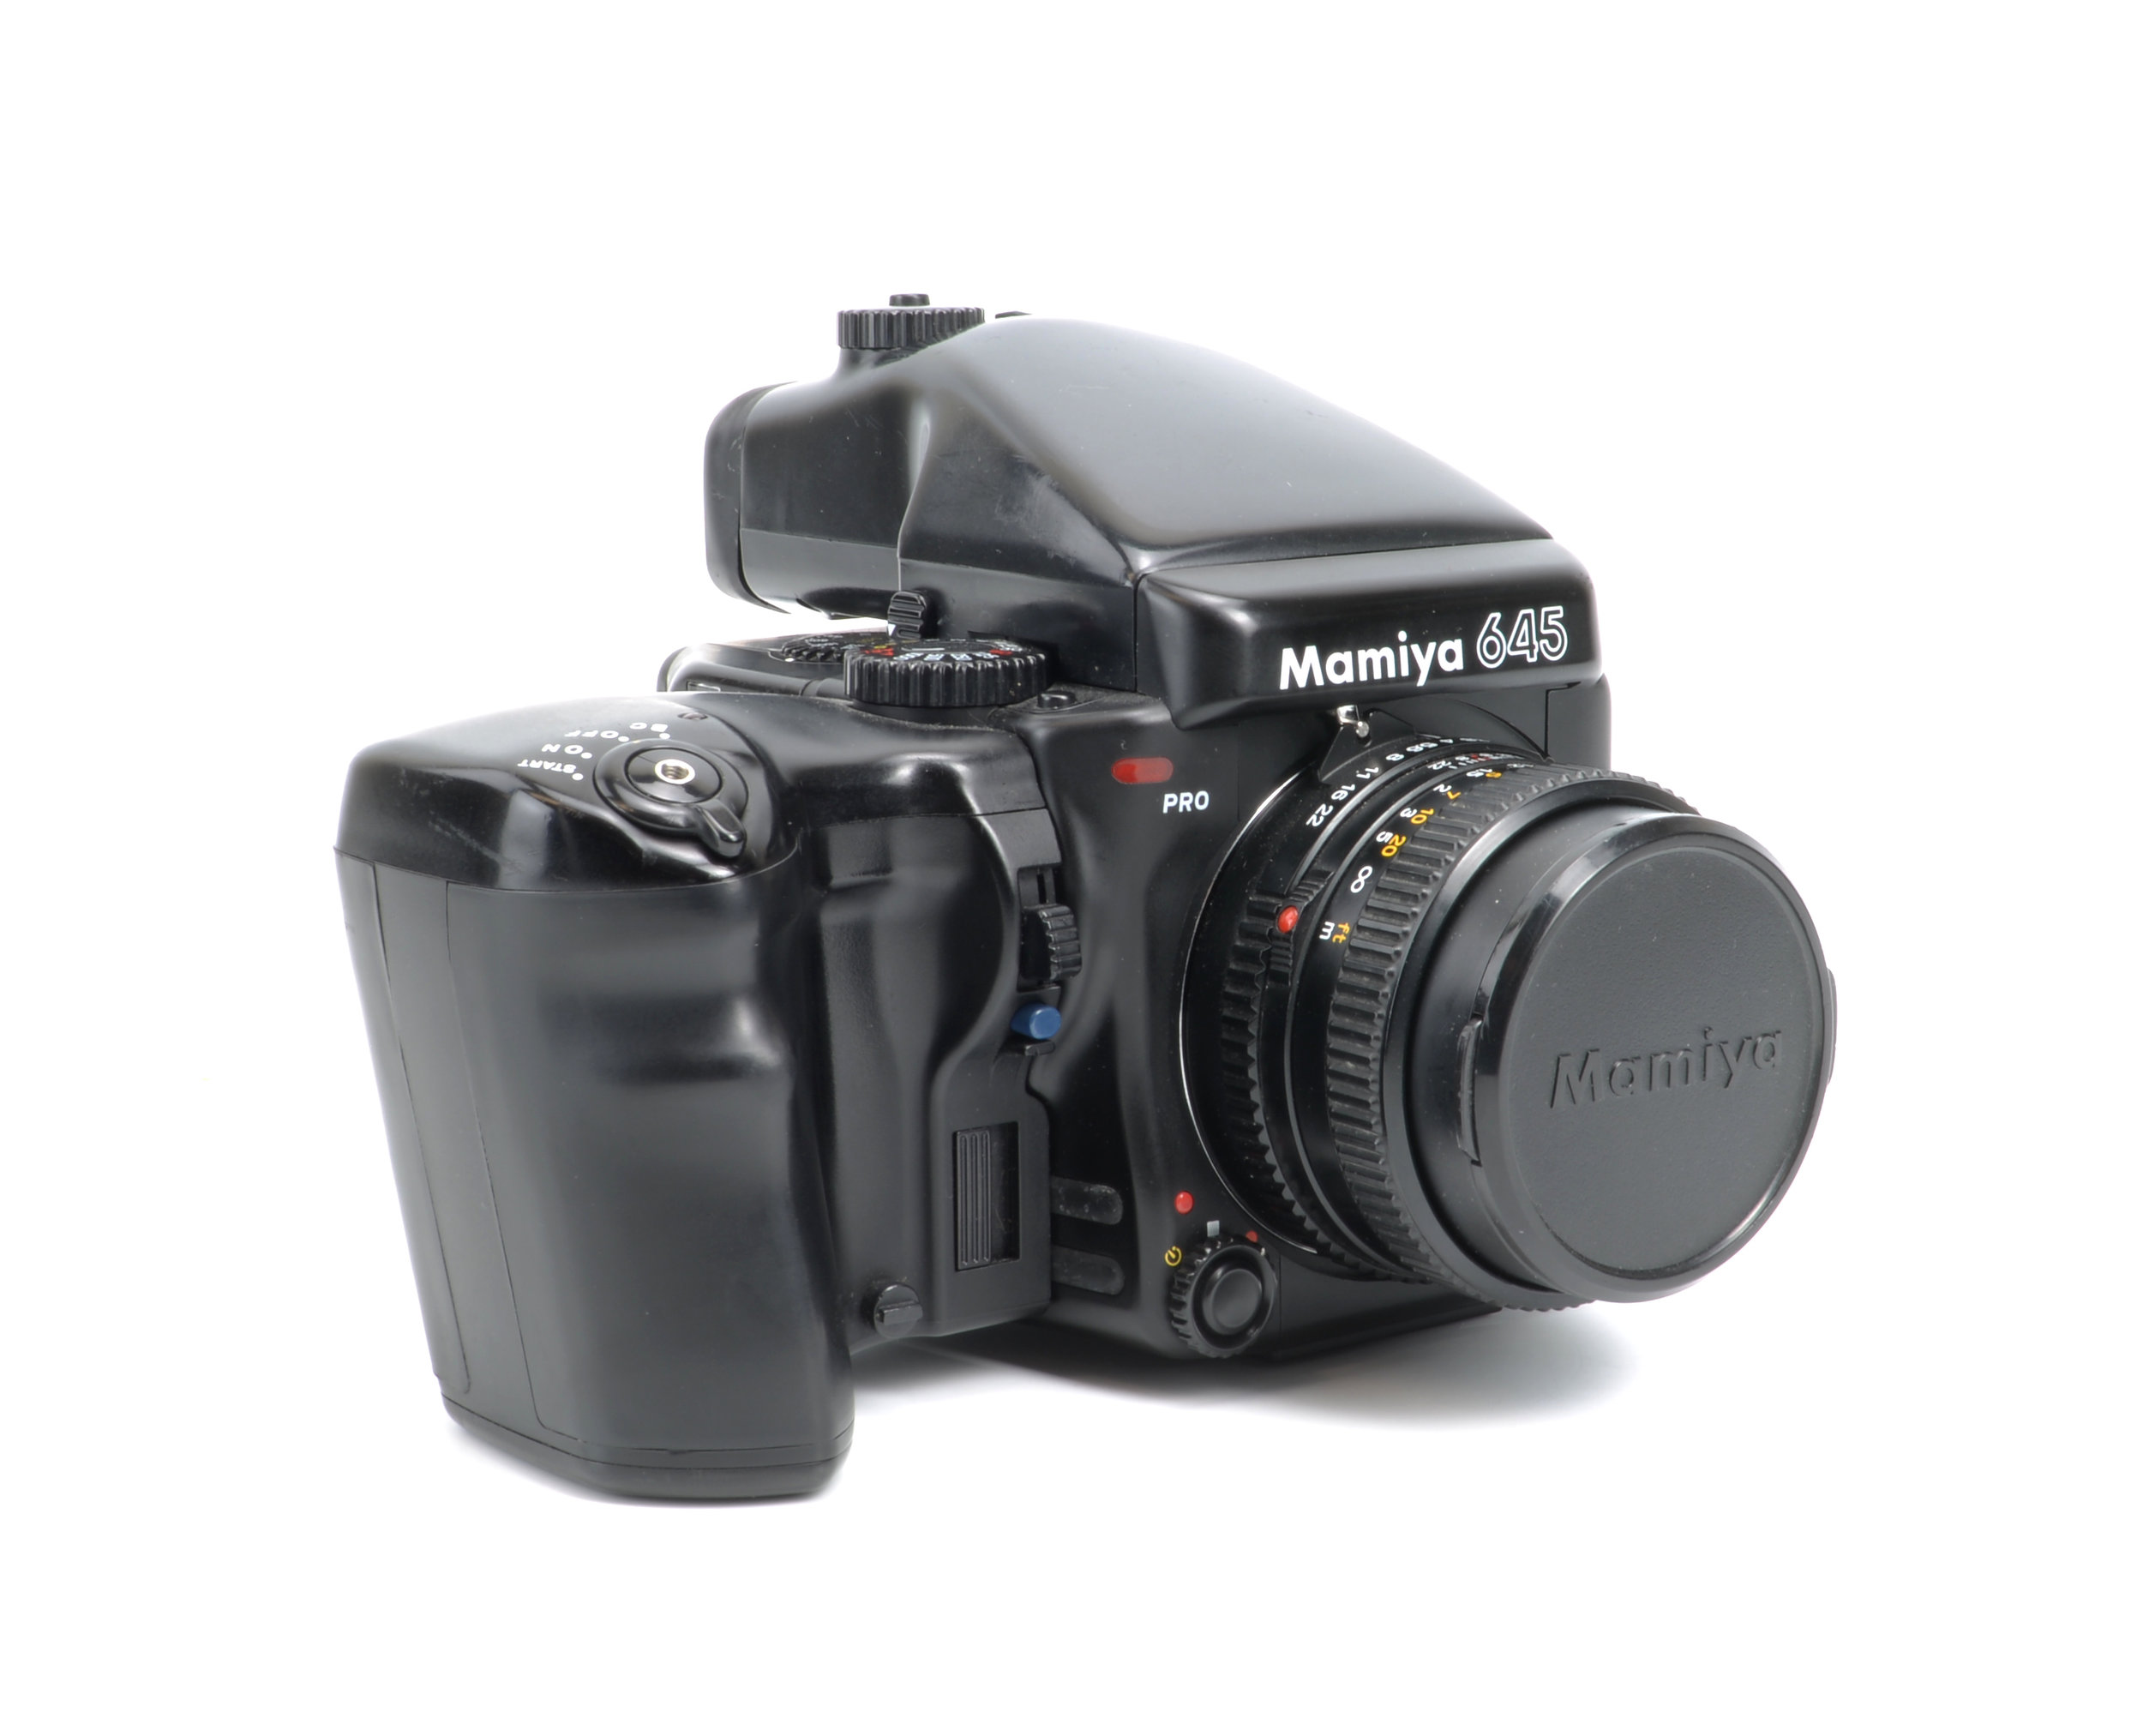 My Mamiya 645 Pro with grip and metered prism finder. This is a nice, fairly compact medium format set-up that works great for street photography. Drawbacks? Manual Focus and weight.